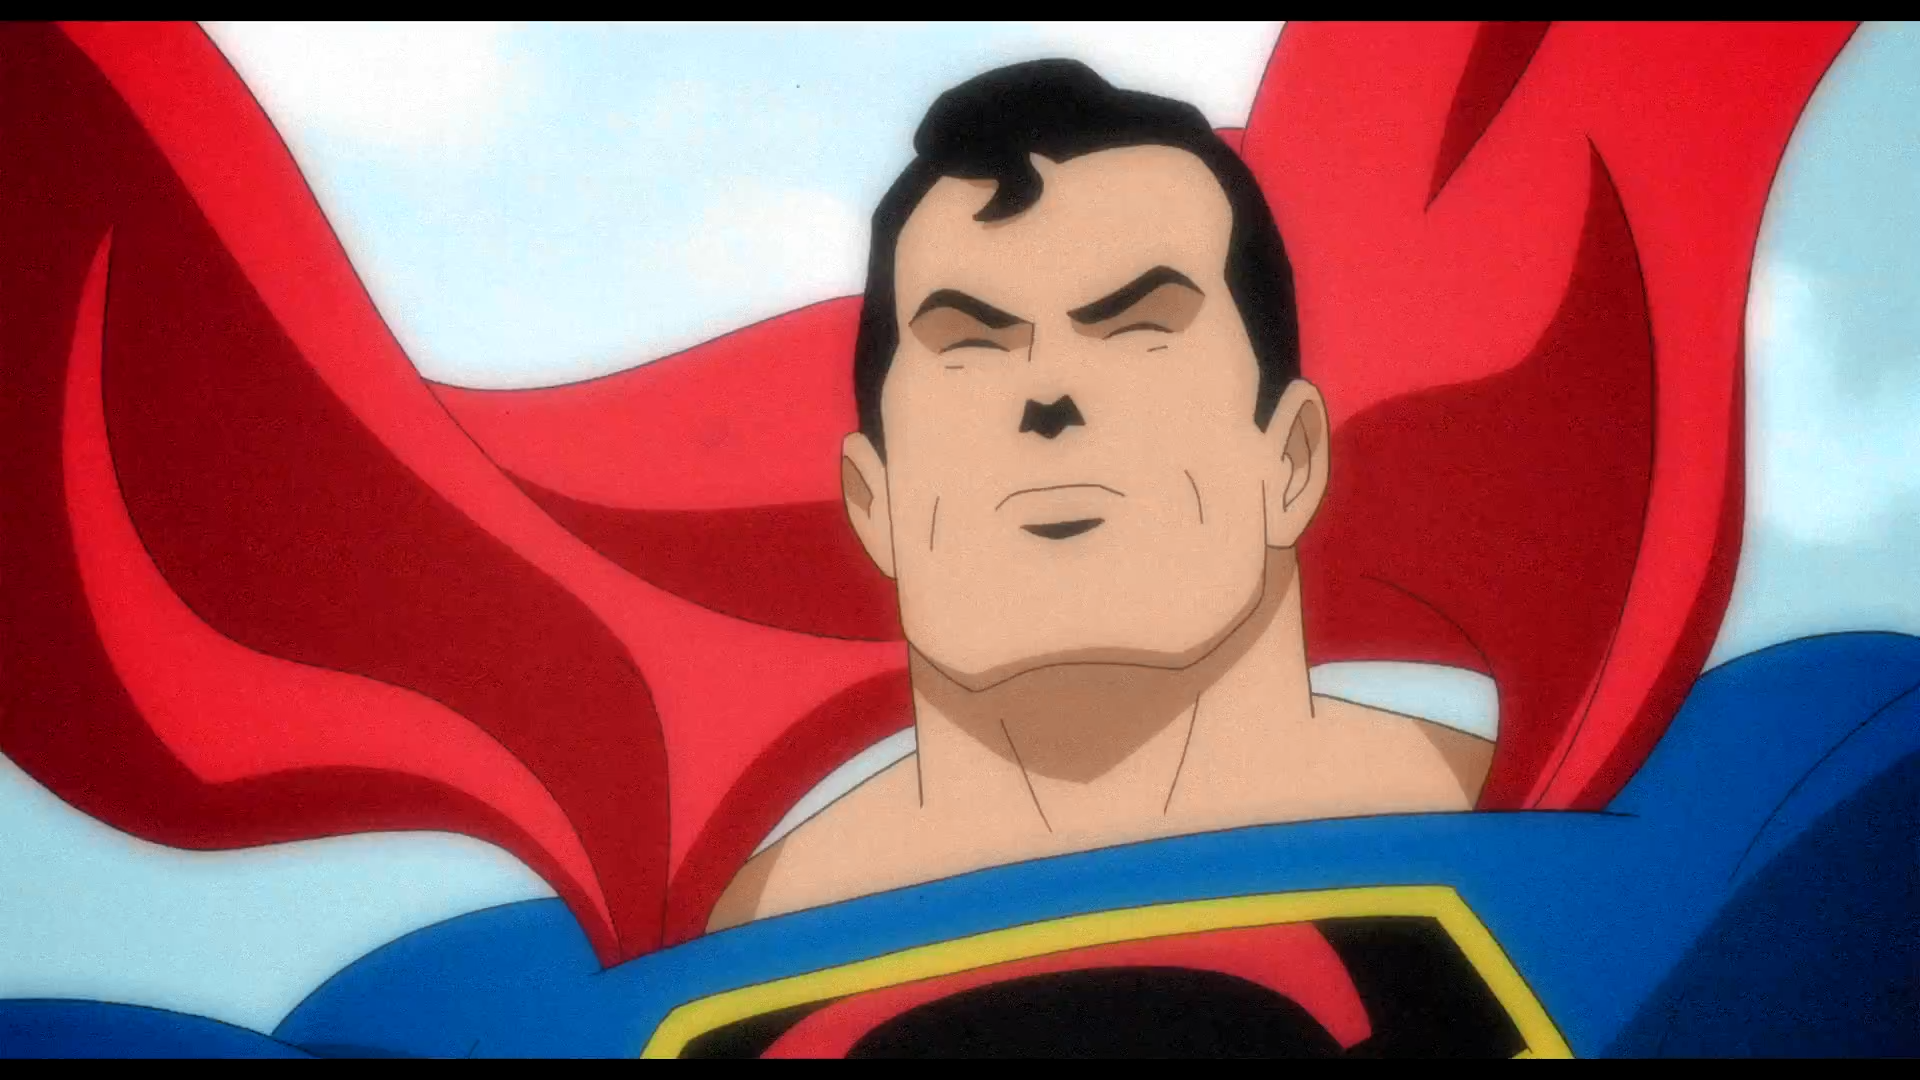 the copyright battle for superman between siegel and shuster and warner bros inc Siegel shuster superman superboy legal docs - petrocelli filing 07-16-12  time warner inc march 5, 1991  lcgal fecs and costs of sening up ioe shuster's estare.